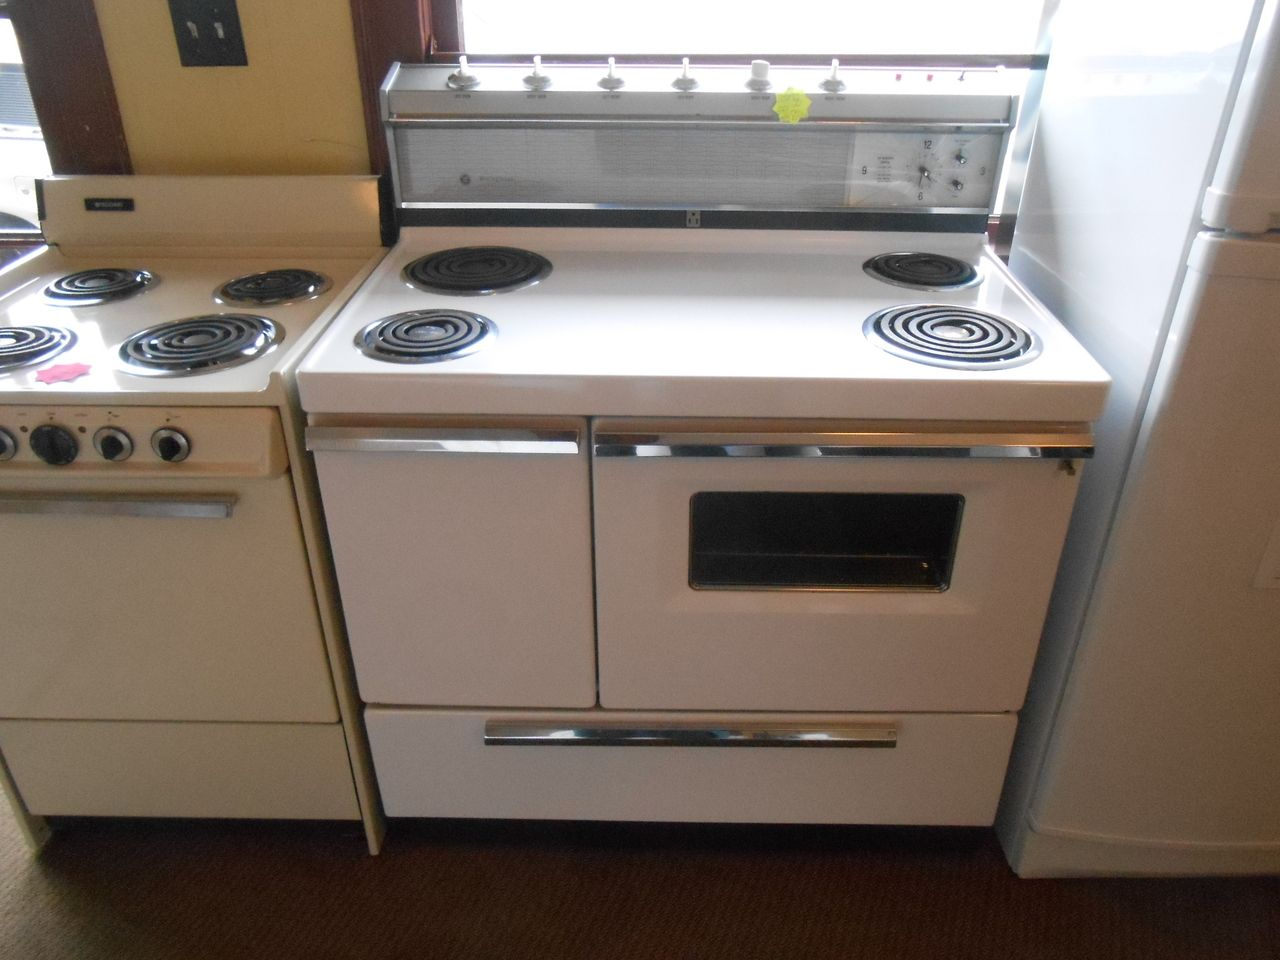 Side by side double oven cost - Appliance City Westinghouse Vintage 40 Inch Range Double Oven Coil Elements 2 Large 2 Small Window On Large Oven Side Large Storage Drawer Regularly